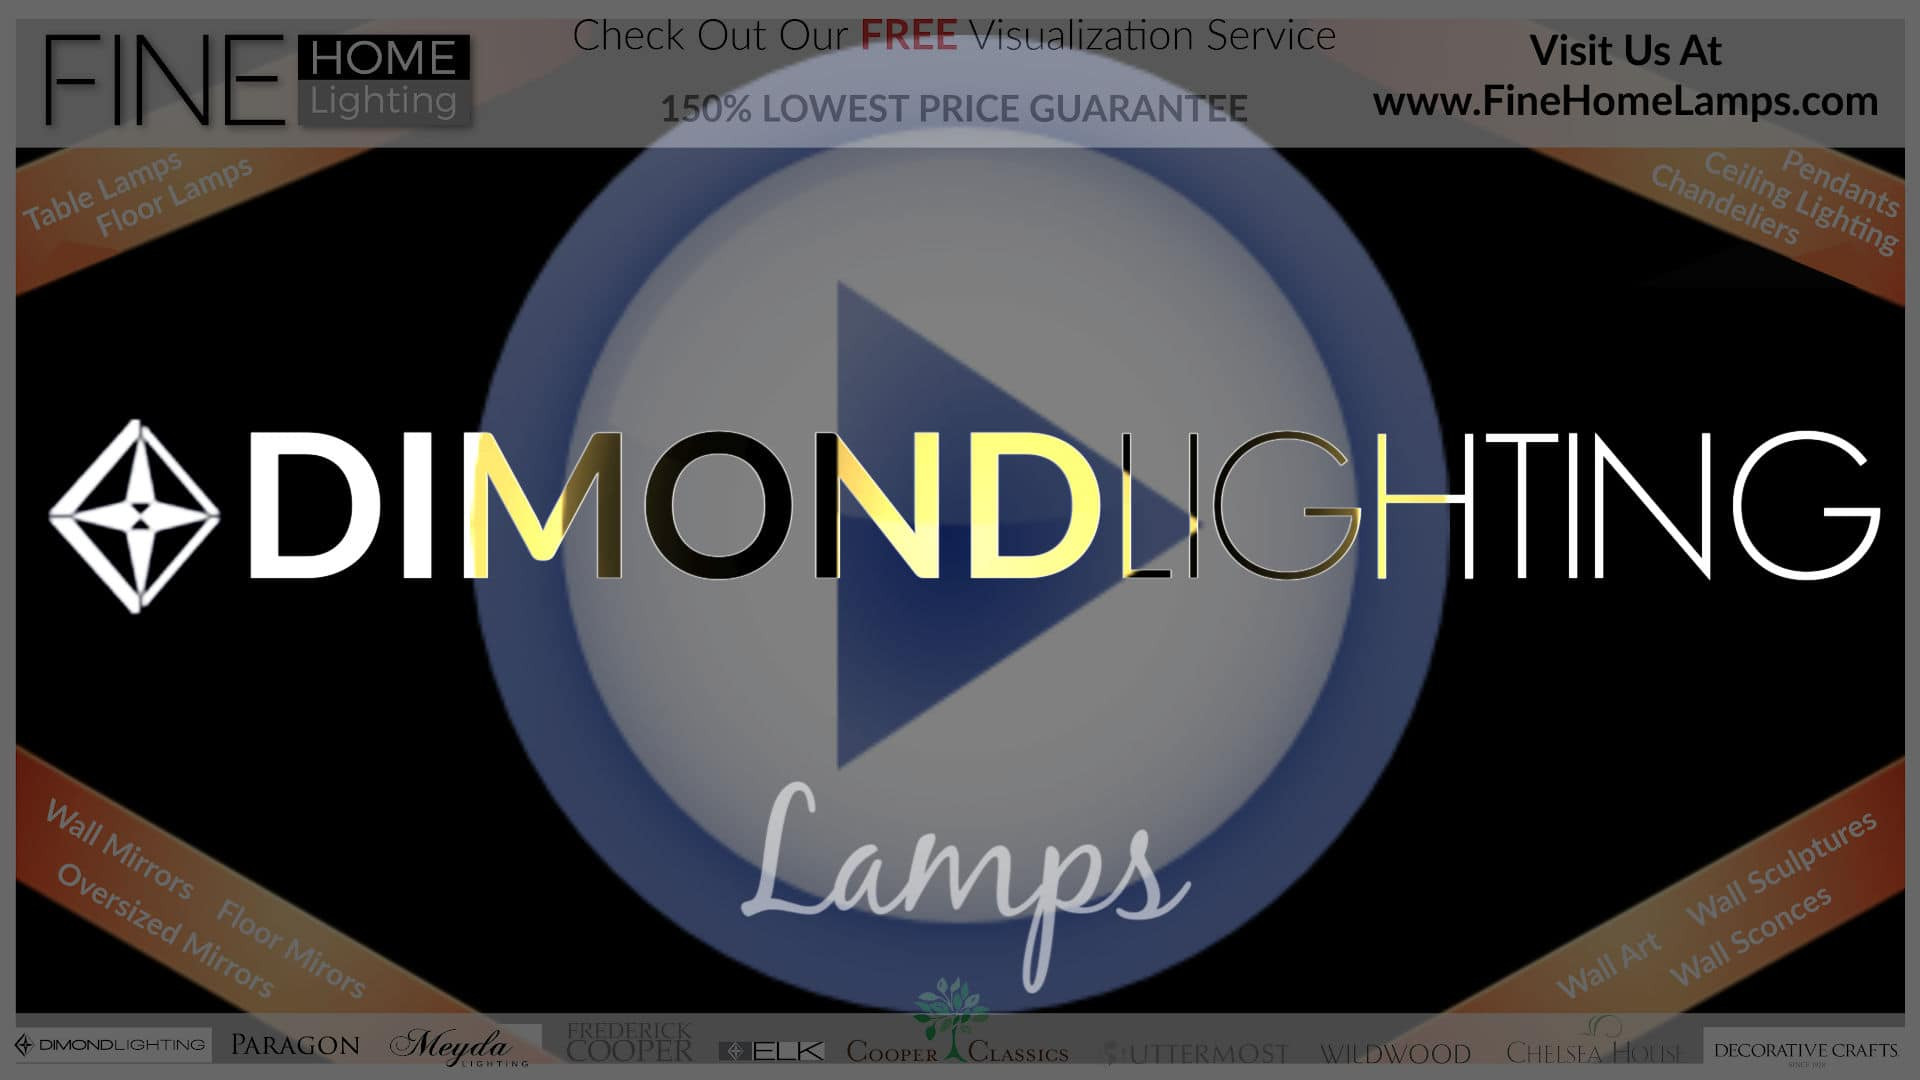 DIMOND-LIGHTING-LAMPS-Thanks-for-watching-this-video-Get-an-additional-15-percent-off-your-next-purchase-Use-Coupon-Code-VIDEO